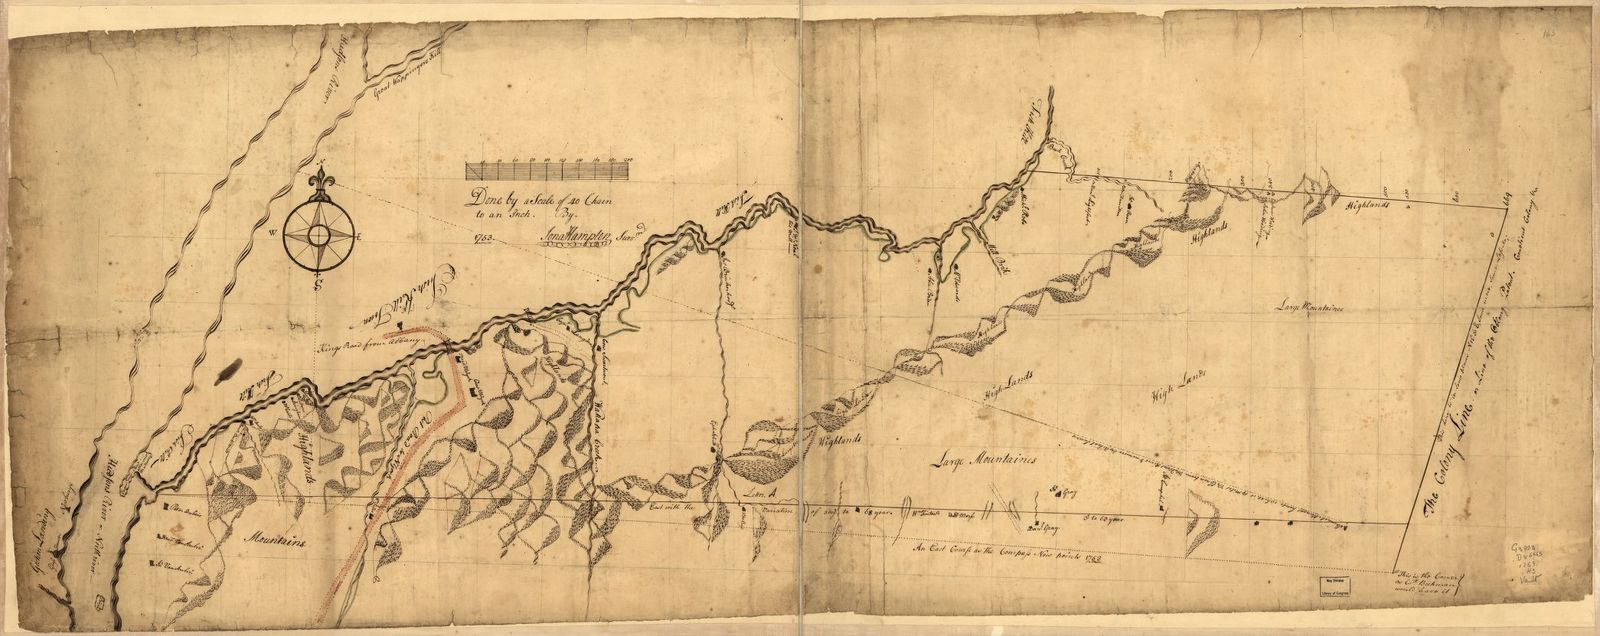 Draft of the lands disputed by Philipse Patent against Beekmans & Rambaults.